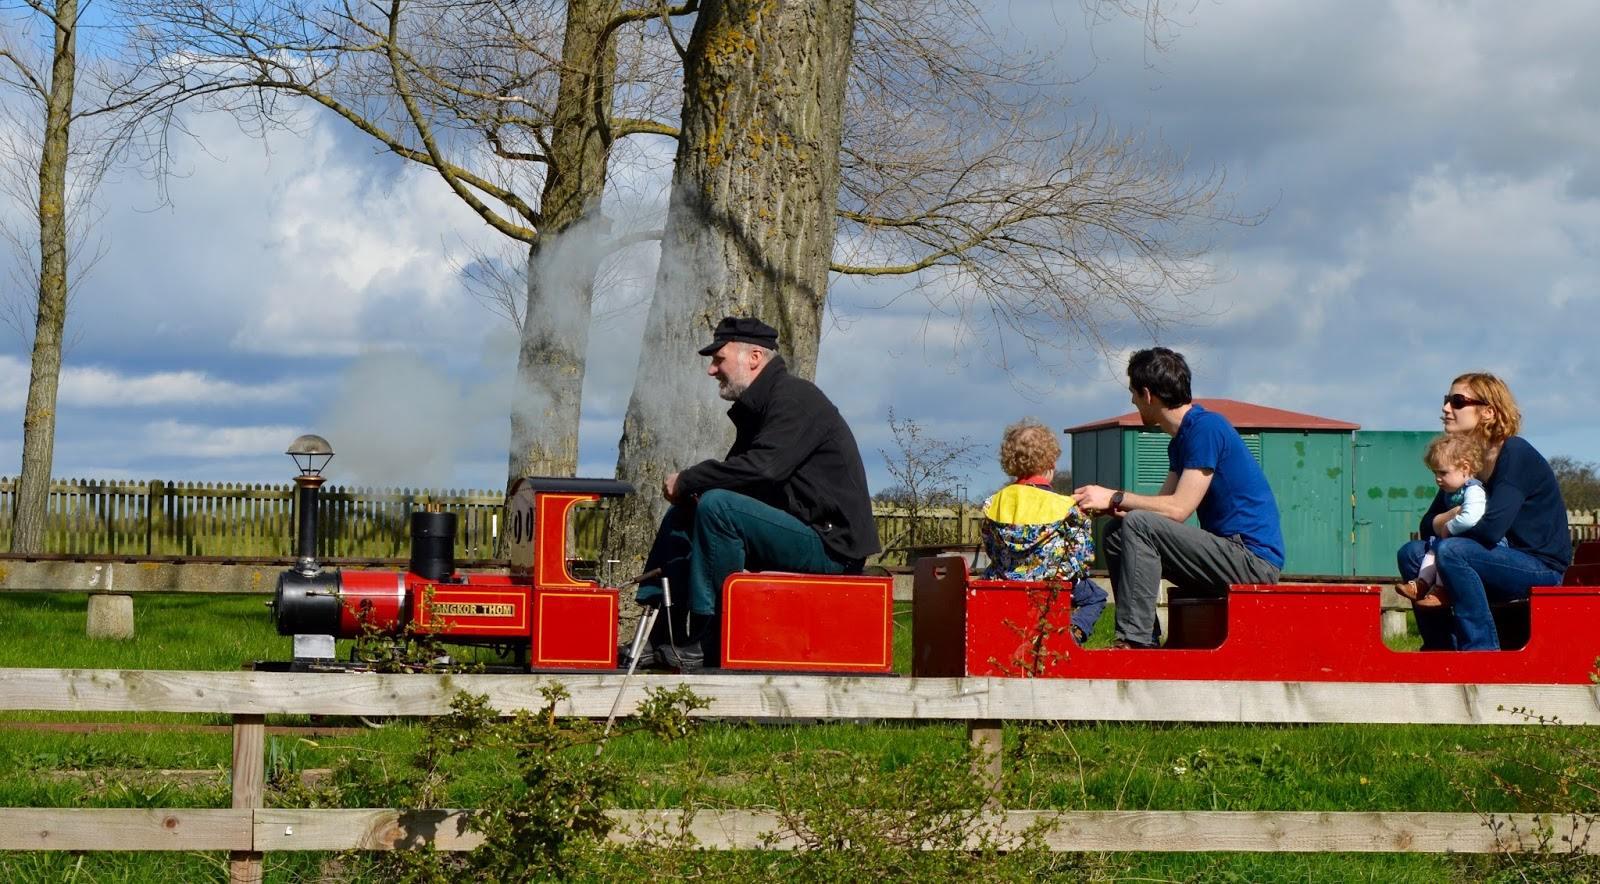 Exhibition Park Newcastle | Free miniature train rides